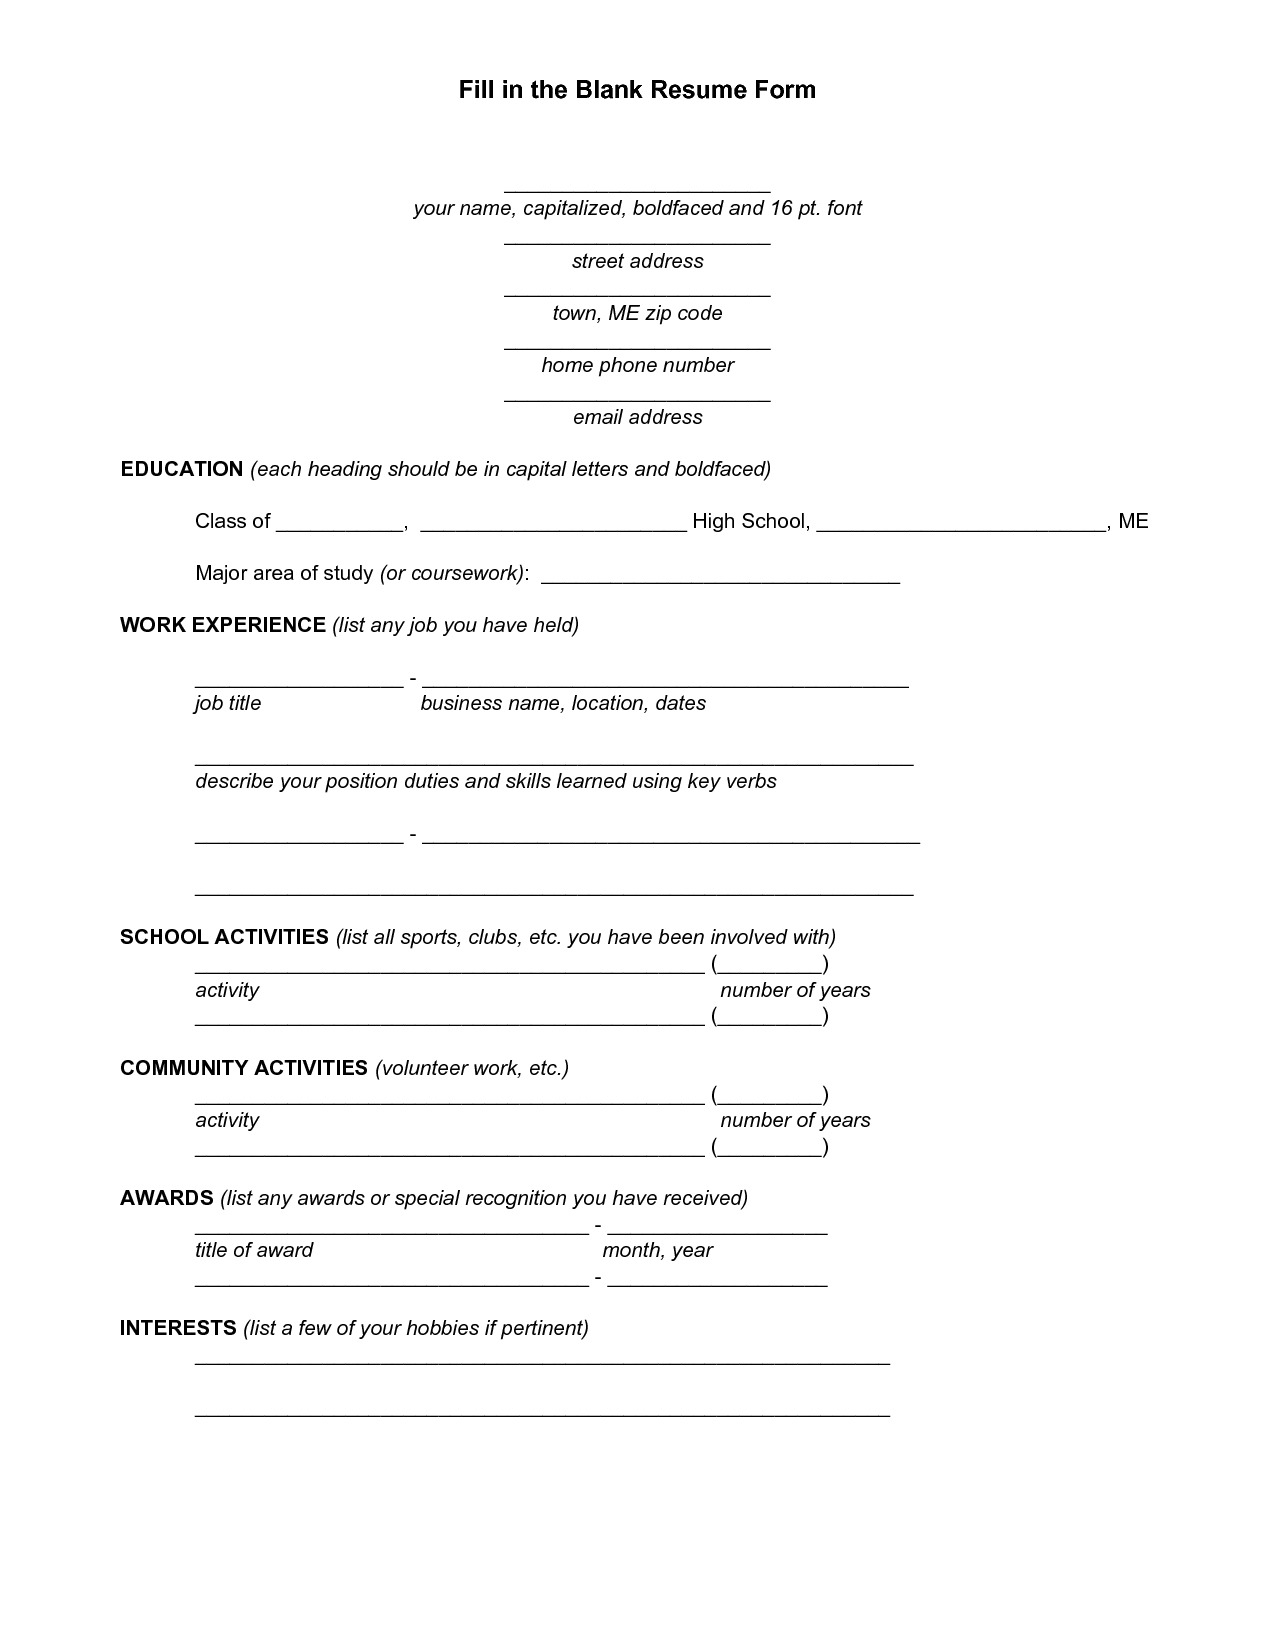 resume blank form download vatozatozdevelopmentco::Printable Resume CV Templates & Format Sample